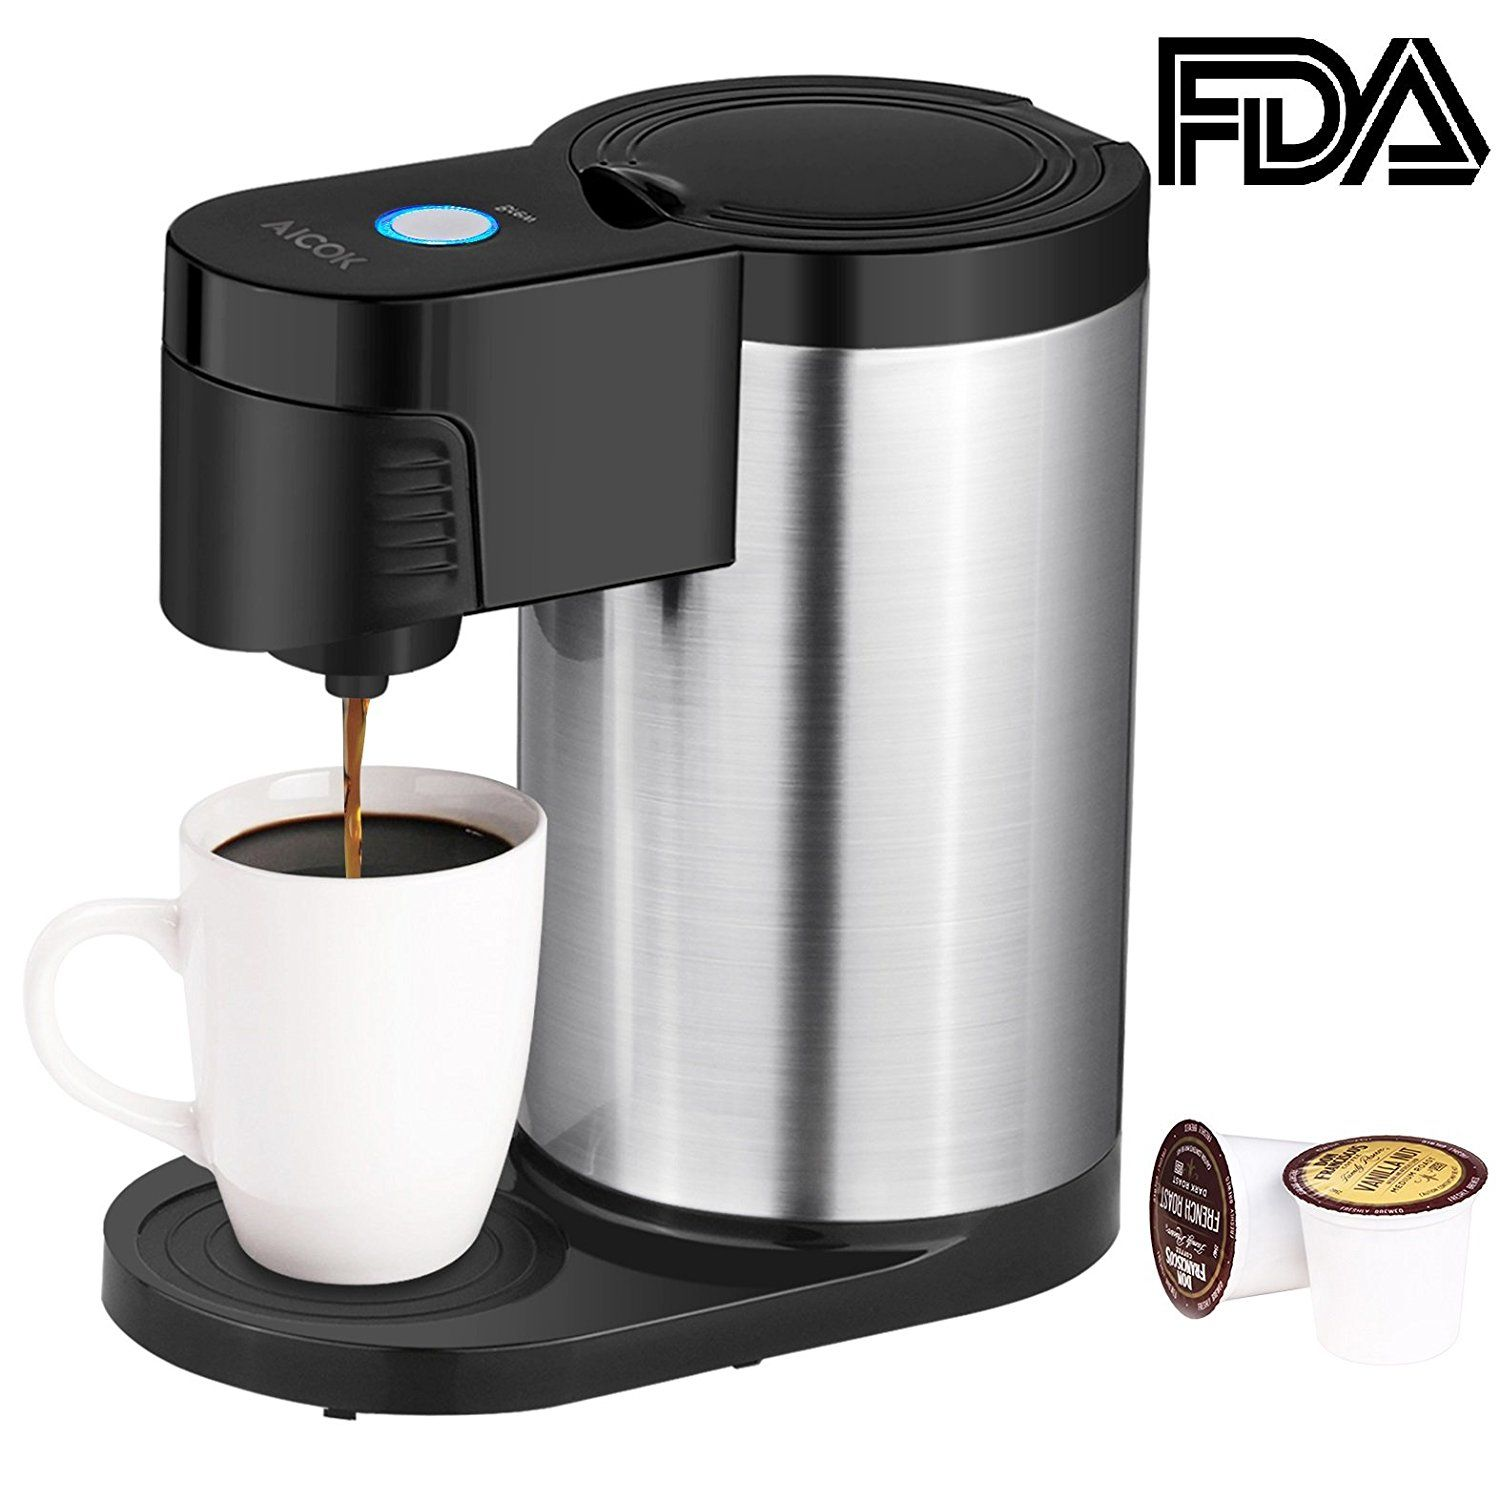 Amazon Com Aicok Single Serve Coffee Maker K Cup Stainless Steel Coffee Machine For Single Cup Coffee Maker Single Serve Coffee Makers One Cup Coffee Maker